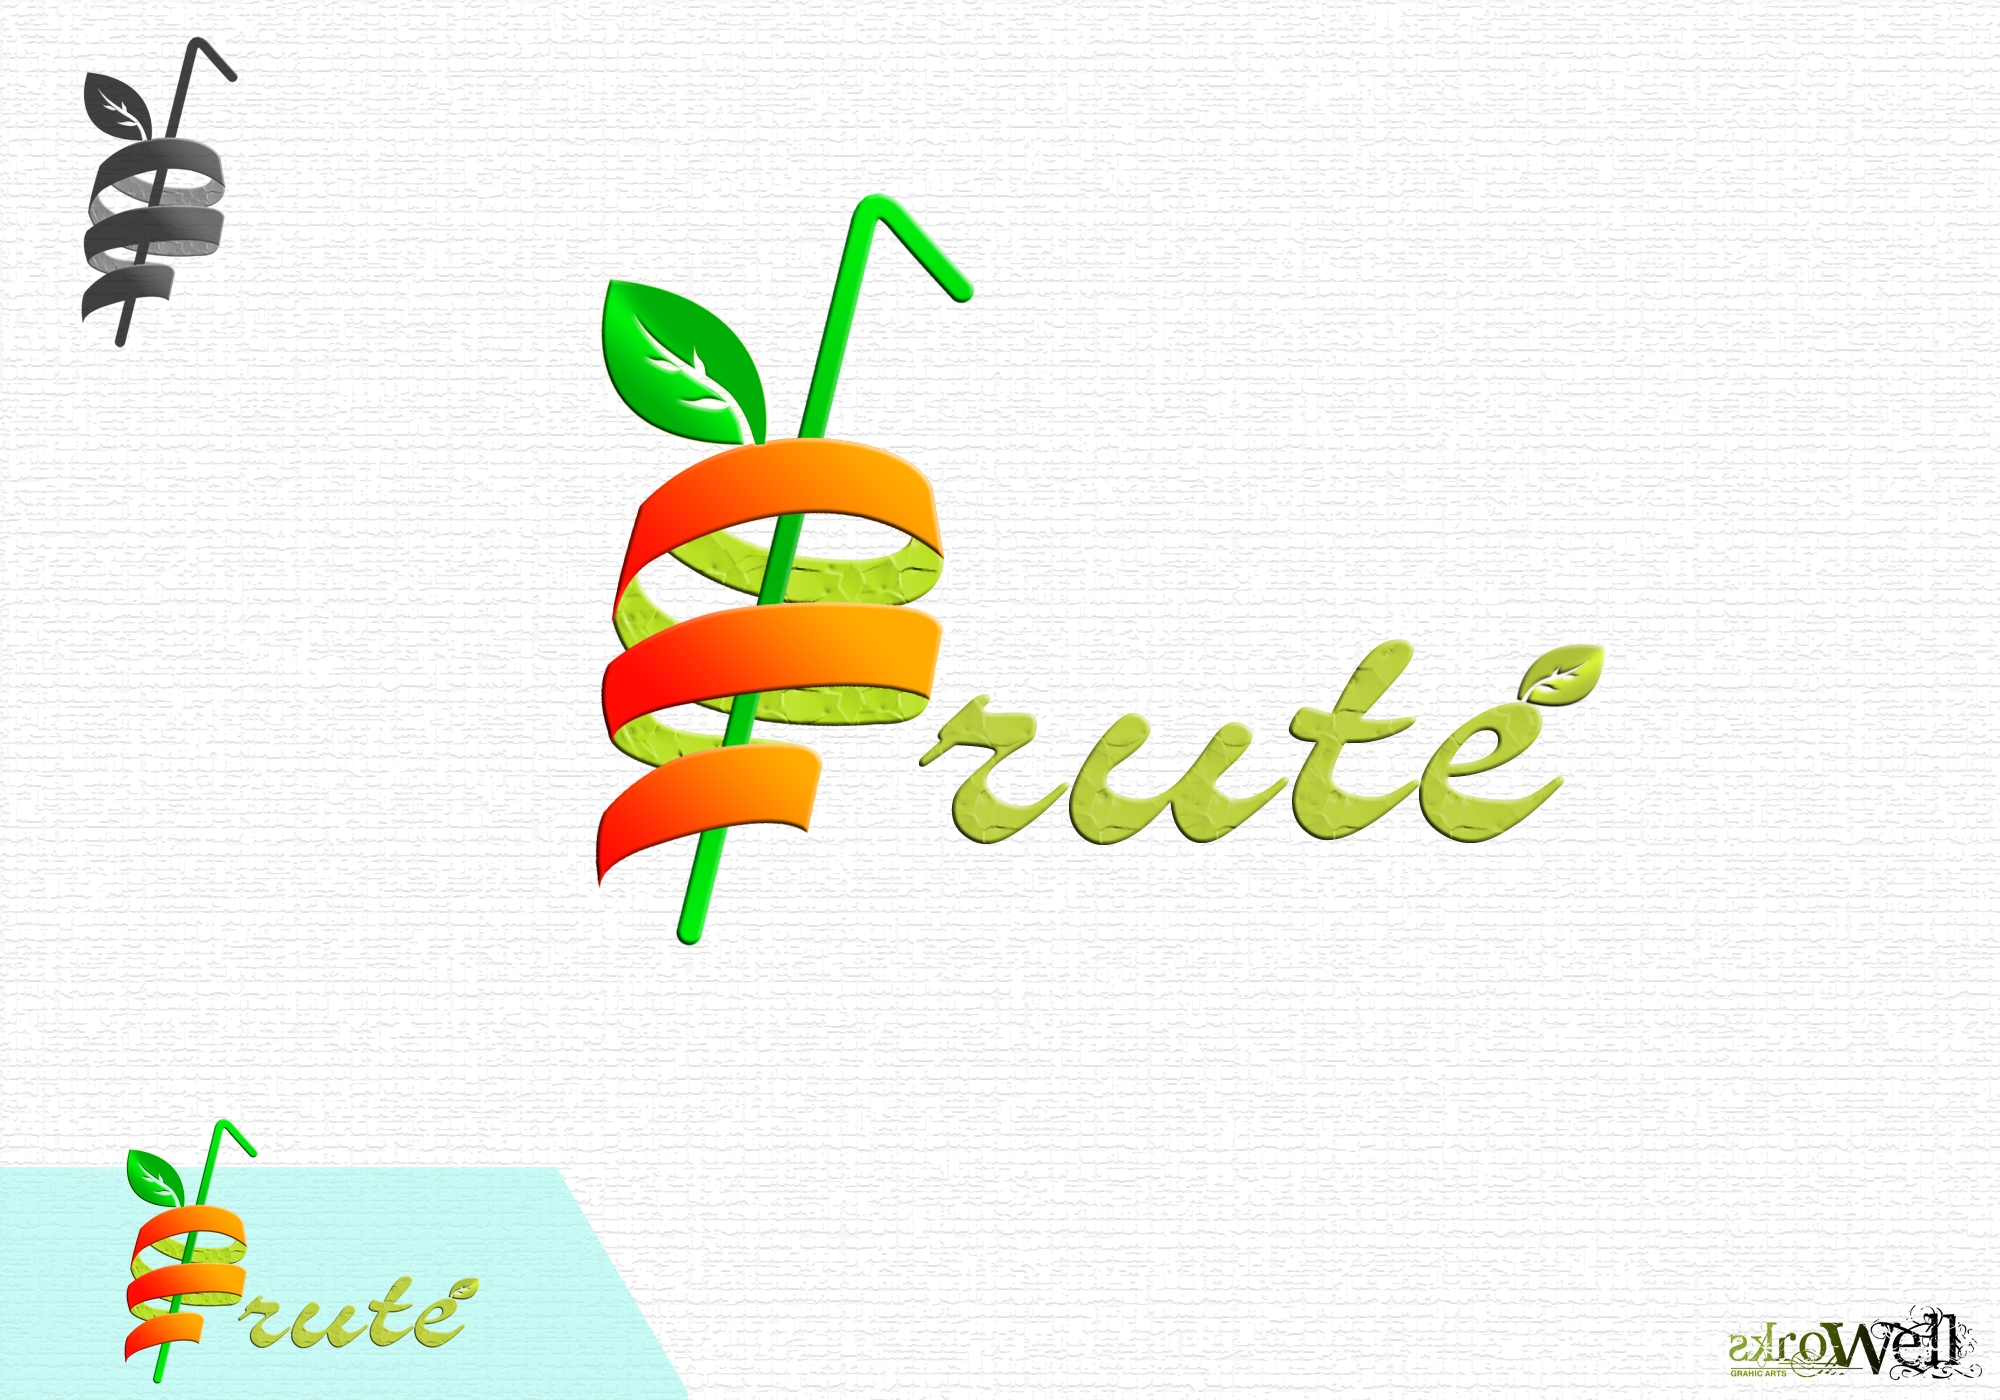 Logo Design by Rowell - Entry No. 60 in the Logo Design Contest Imaginative Logo Design for Fruté.